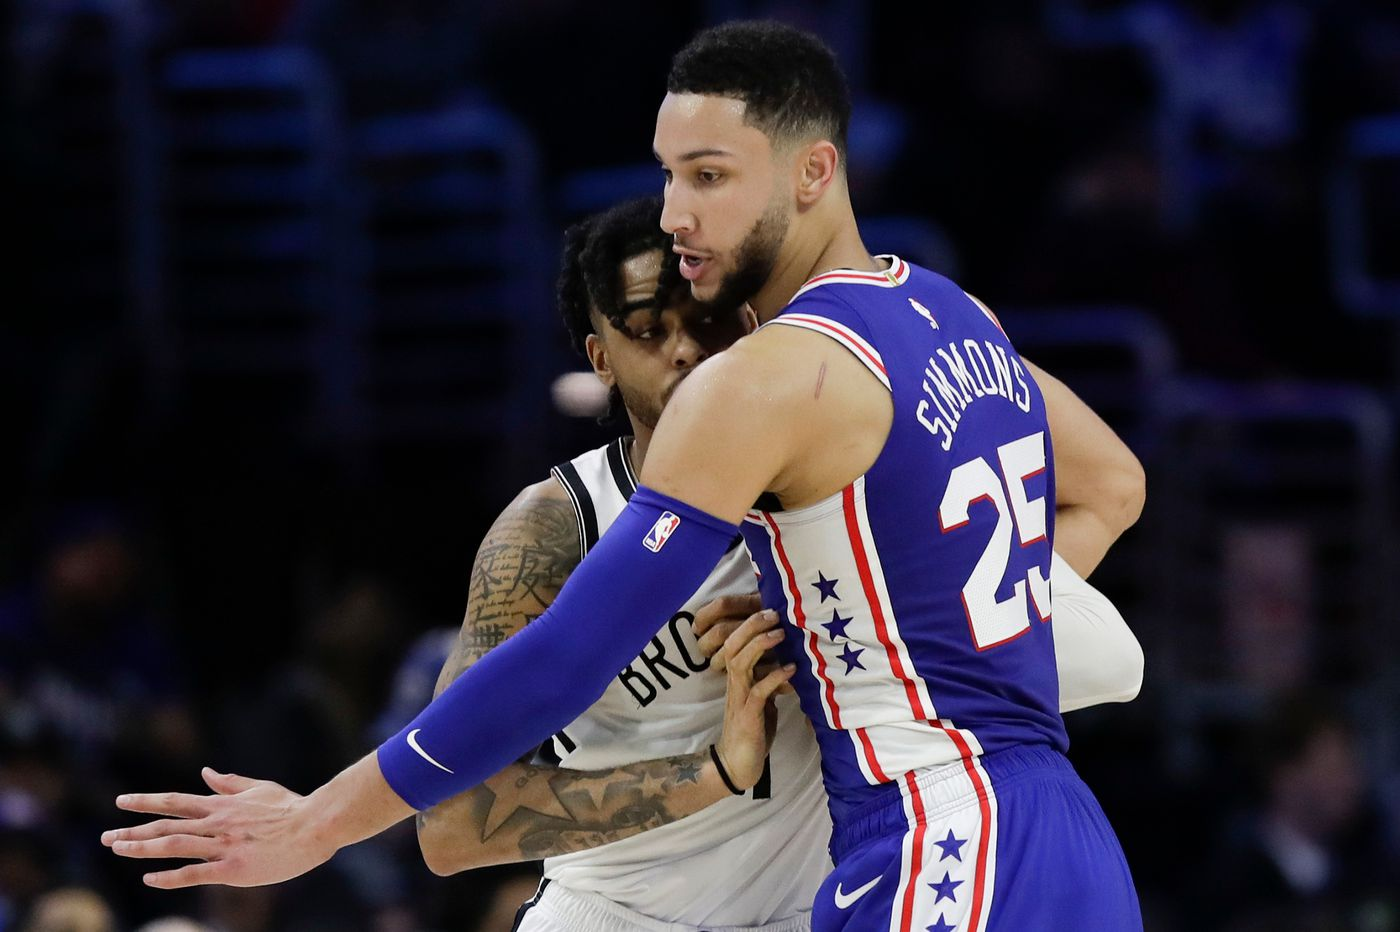 Sixers-Nets observations: Ben Simmons' defense, Joel Embiid's quick thinking shine